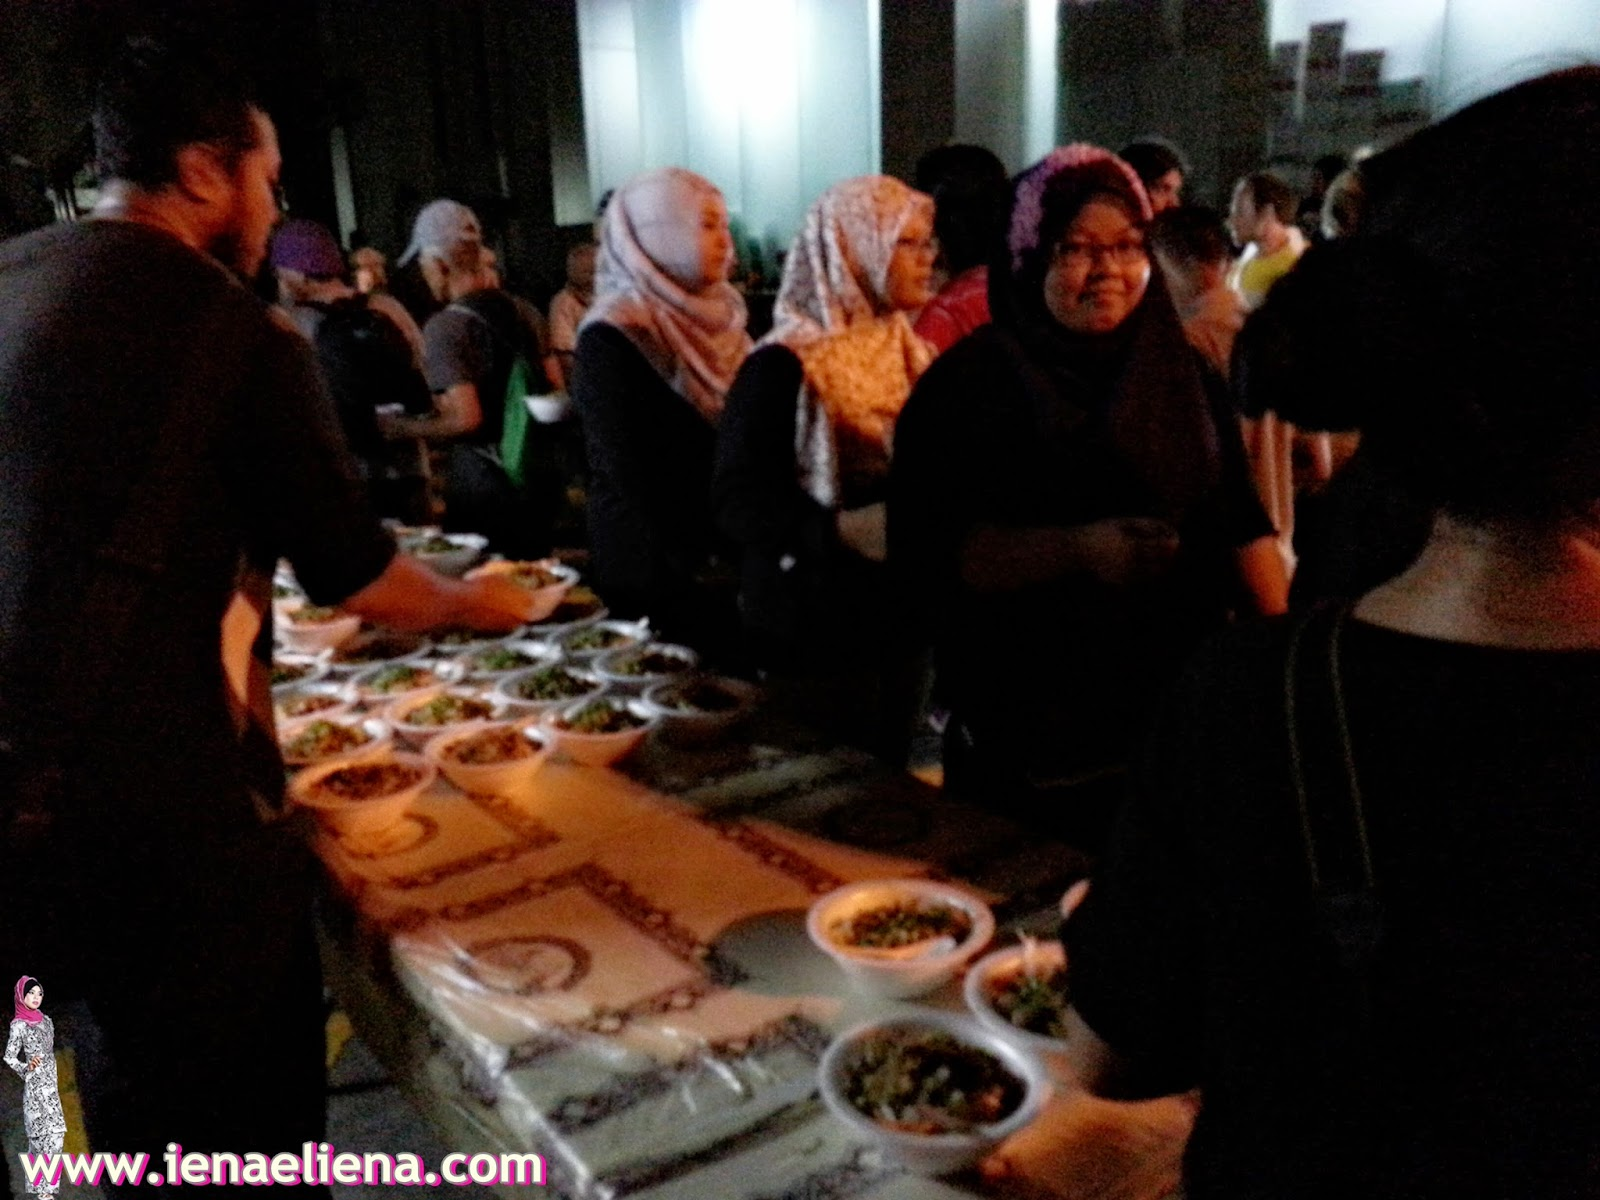 FEED THE HOMELESS PROGRAMME 12 MARCH 2015